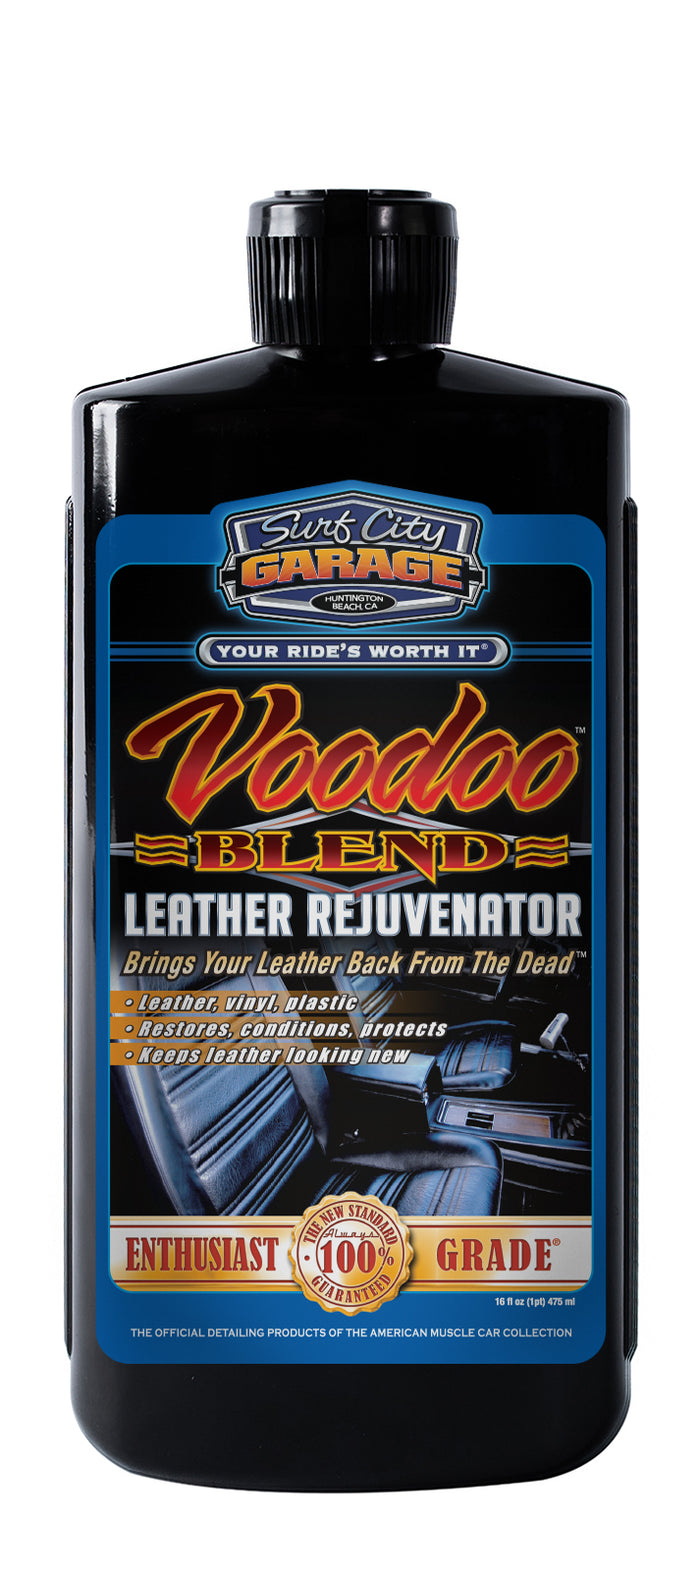 Voodoo Blend® Leather Rejuvenator